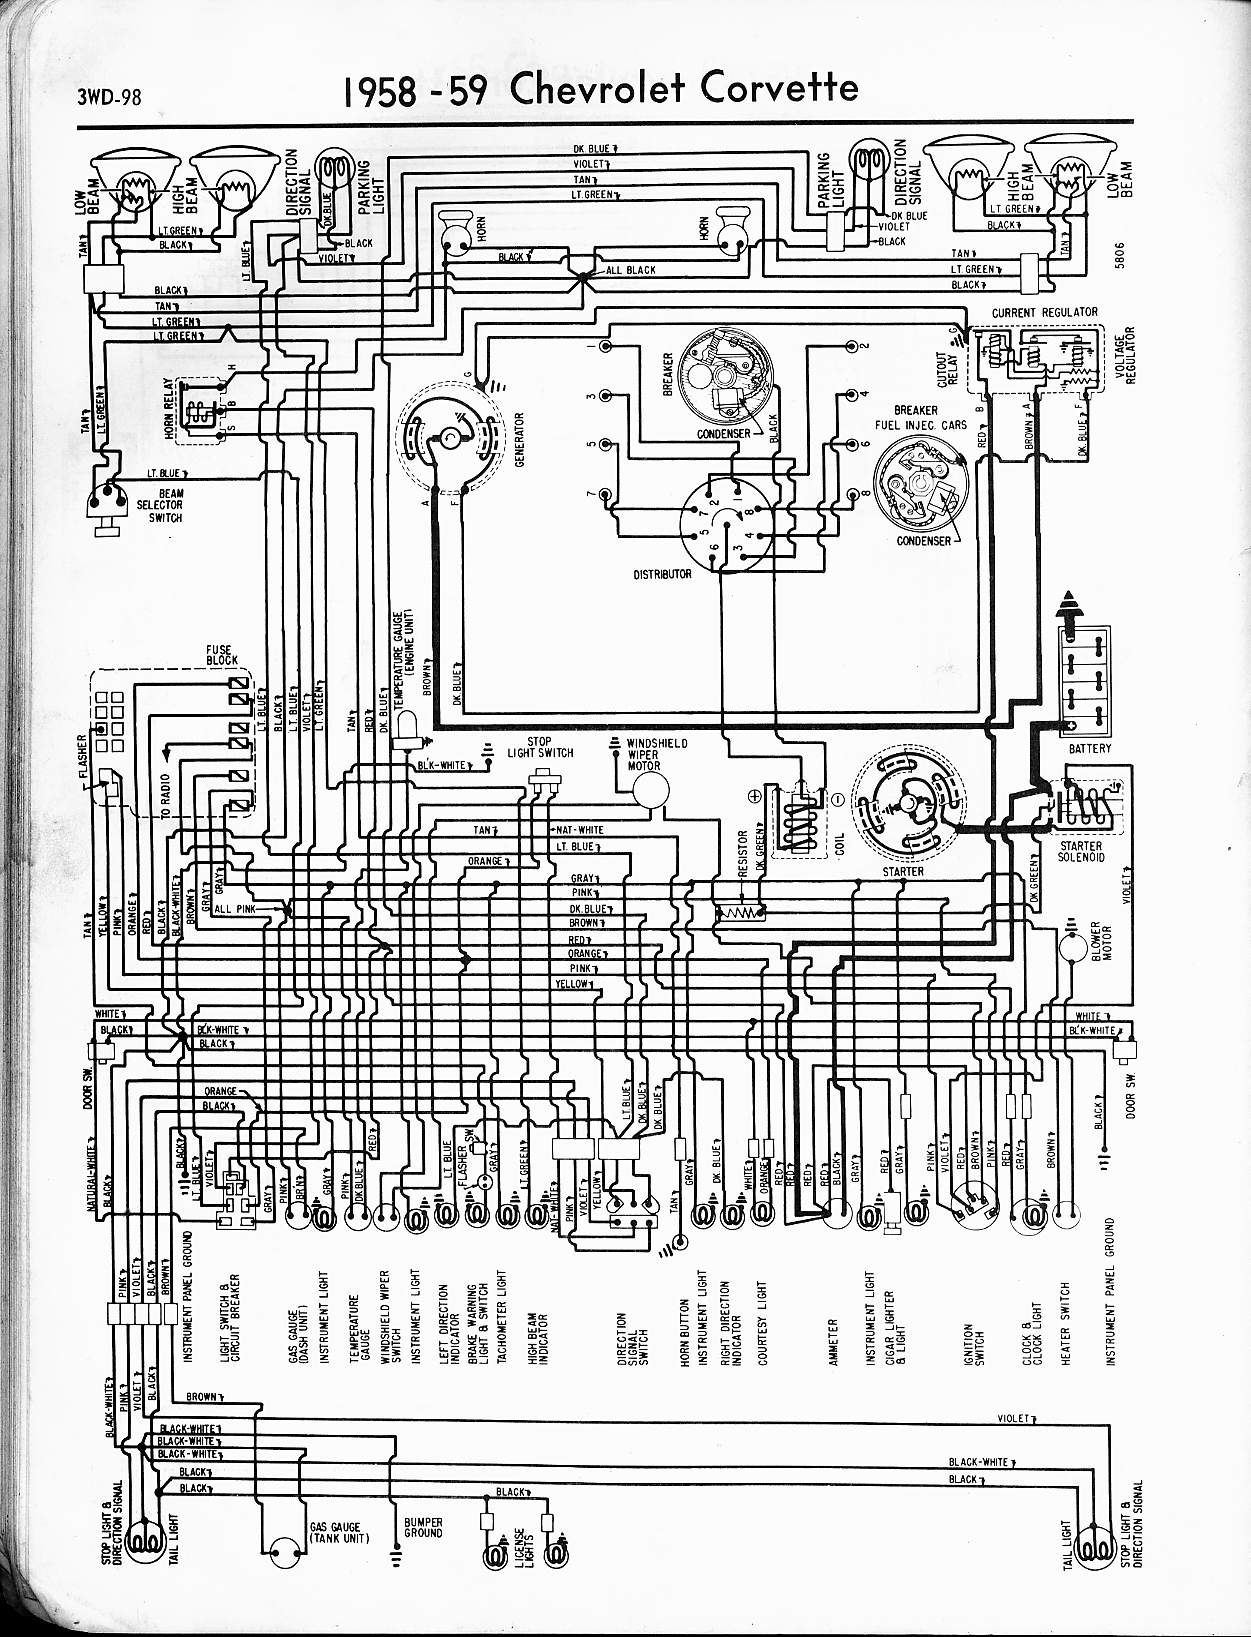 66 6 Cylinder Gm Wiring Harness Diagram Just Another Chevy Truck 1965 Ignition Schema Img Rh 8 5 Derleib De